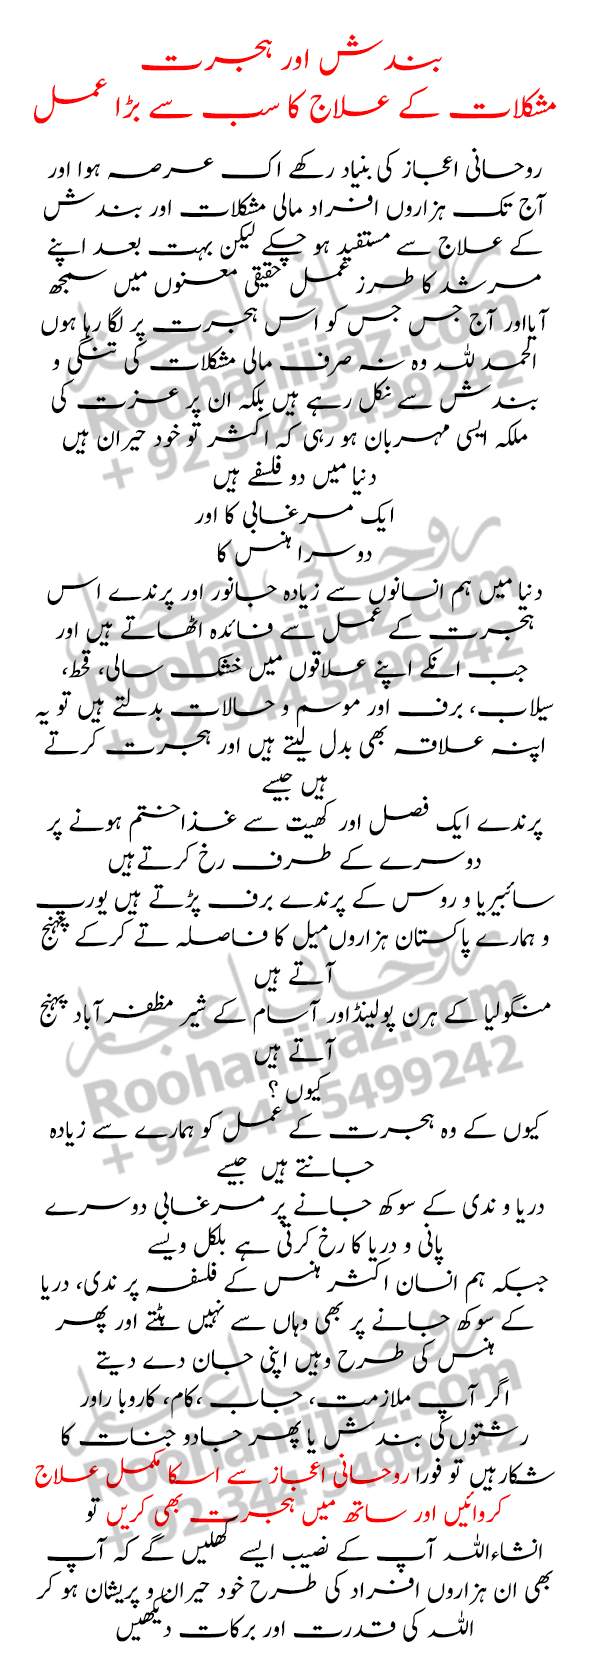 Bundish aur hijrat By Roohaniijaz 2for web